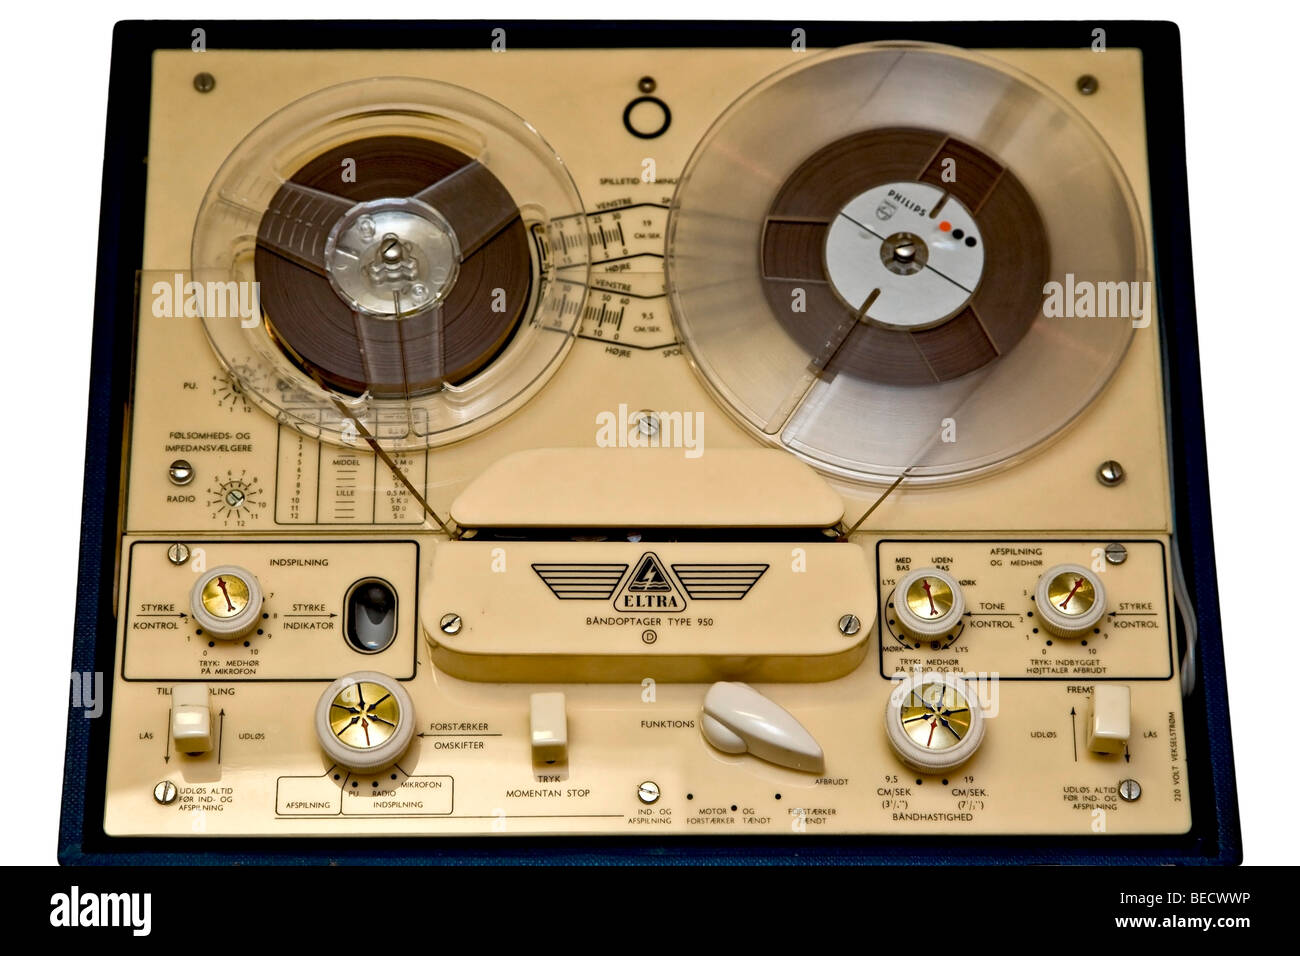 Old reel to reel tape recorder - Stock Image